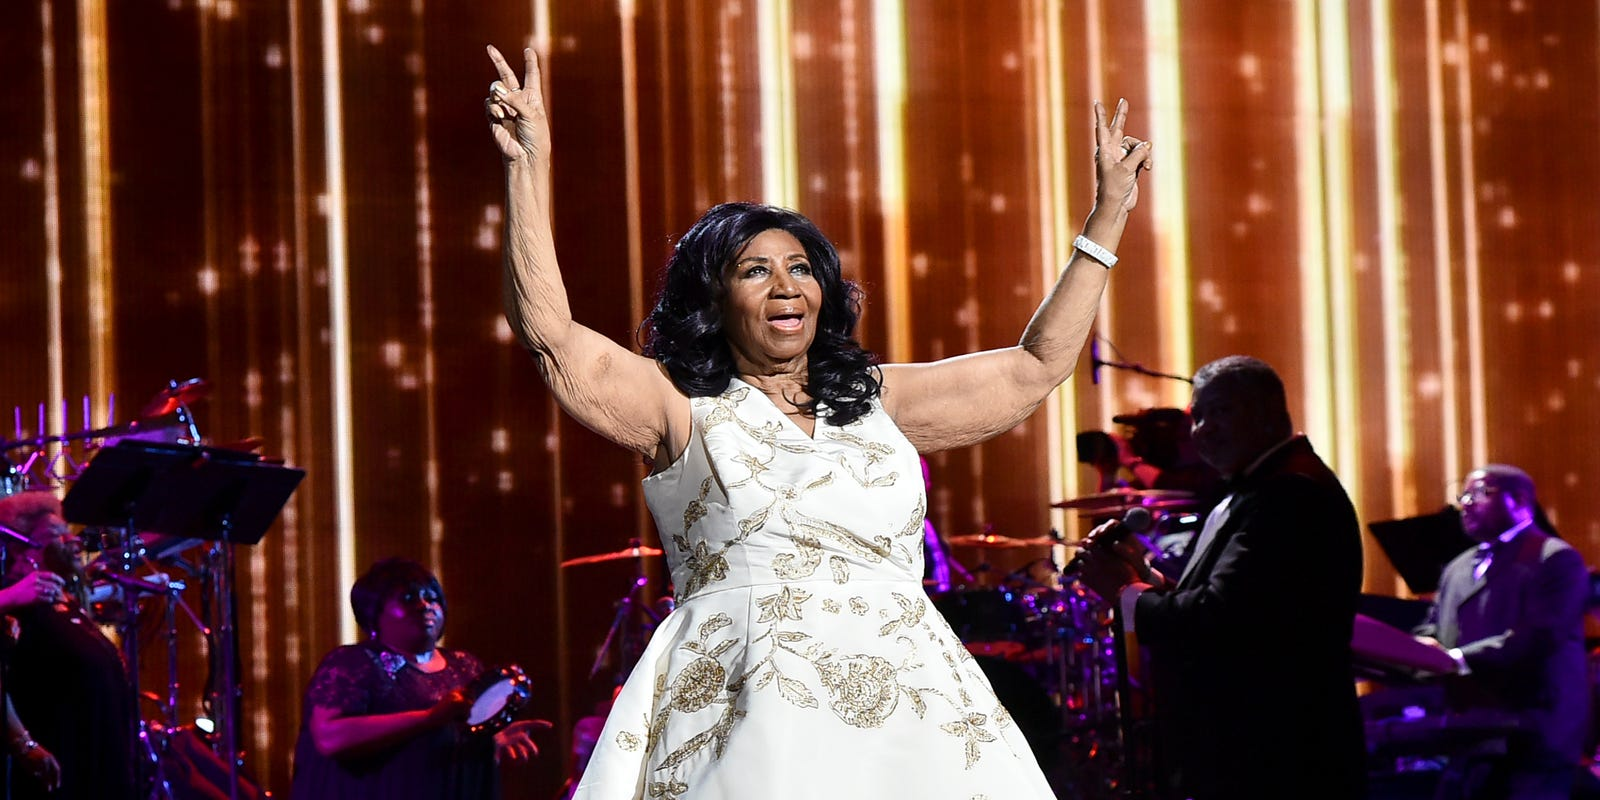 fd1bc7a5d Aretha Franklin, many more celebs, died from pancreatic cancer